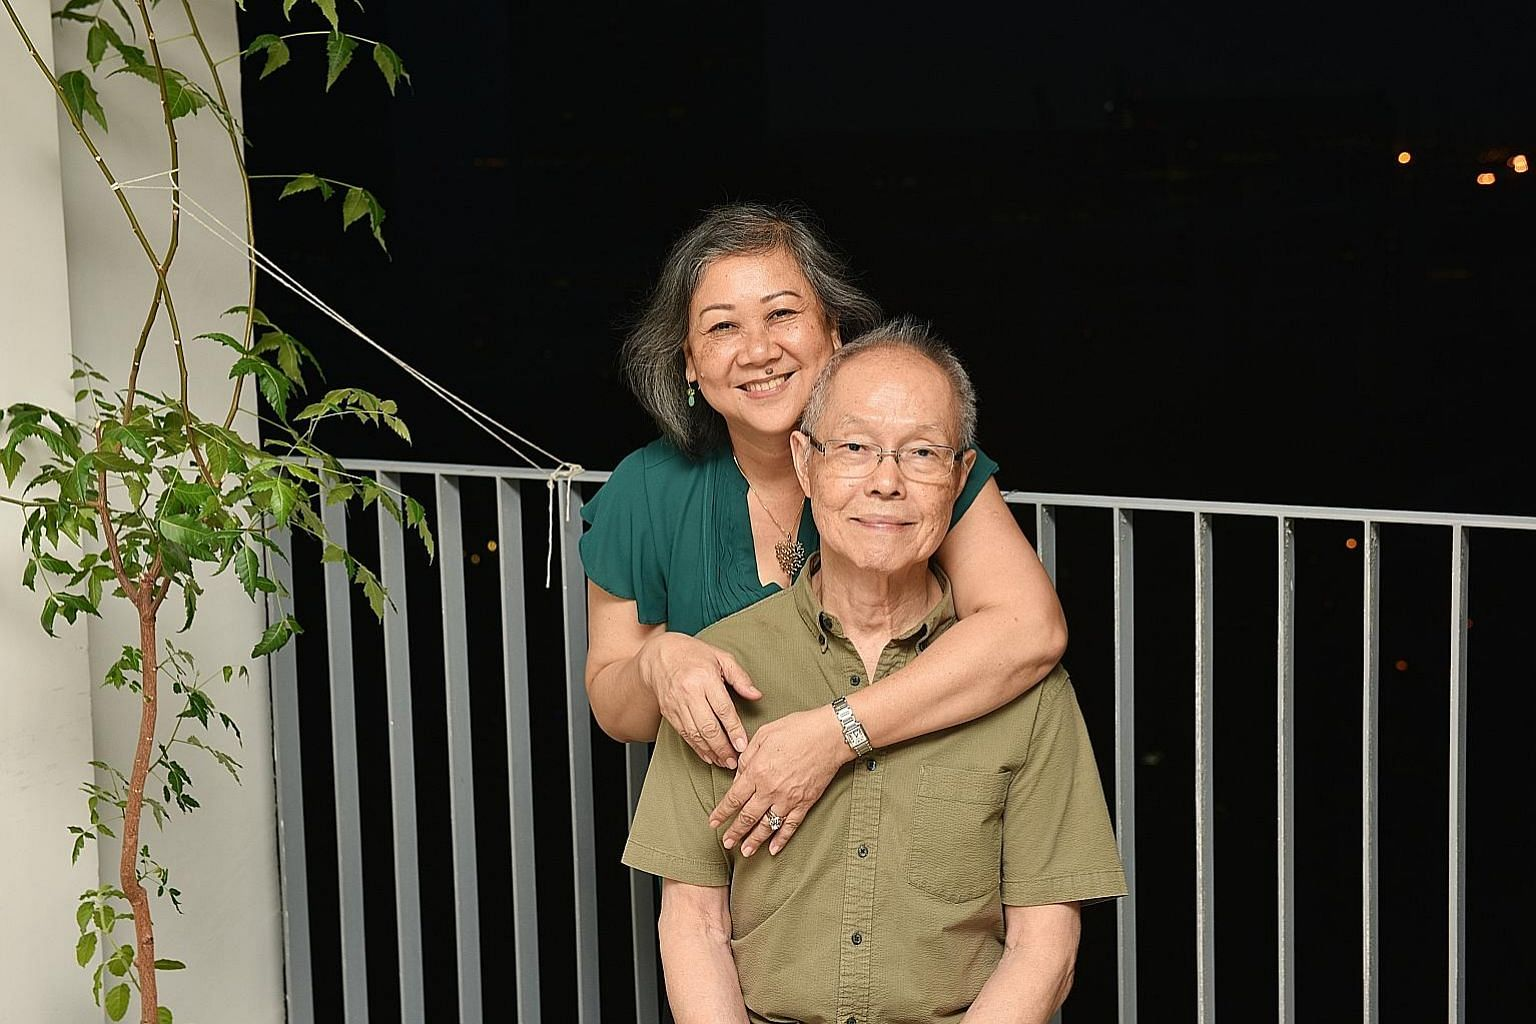 Adjunct lecturer Lindy Ong, 55, a permanent resident, and Mr Peter Lim, 80, former editor-in-chief of The Straits Times, have been together for 27 years and tied the knot last month.